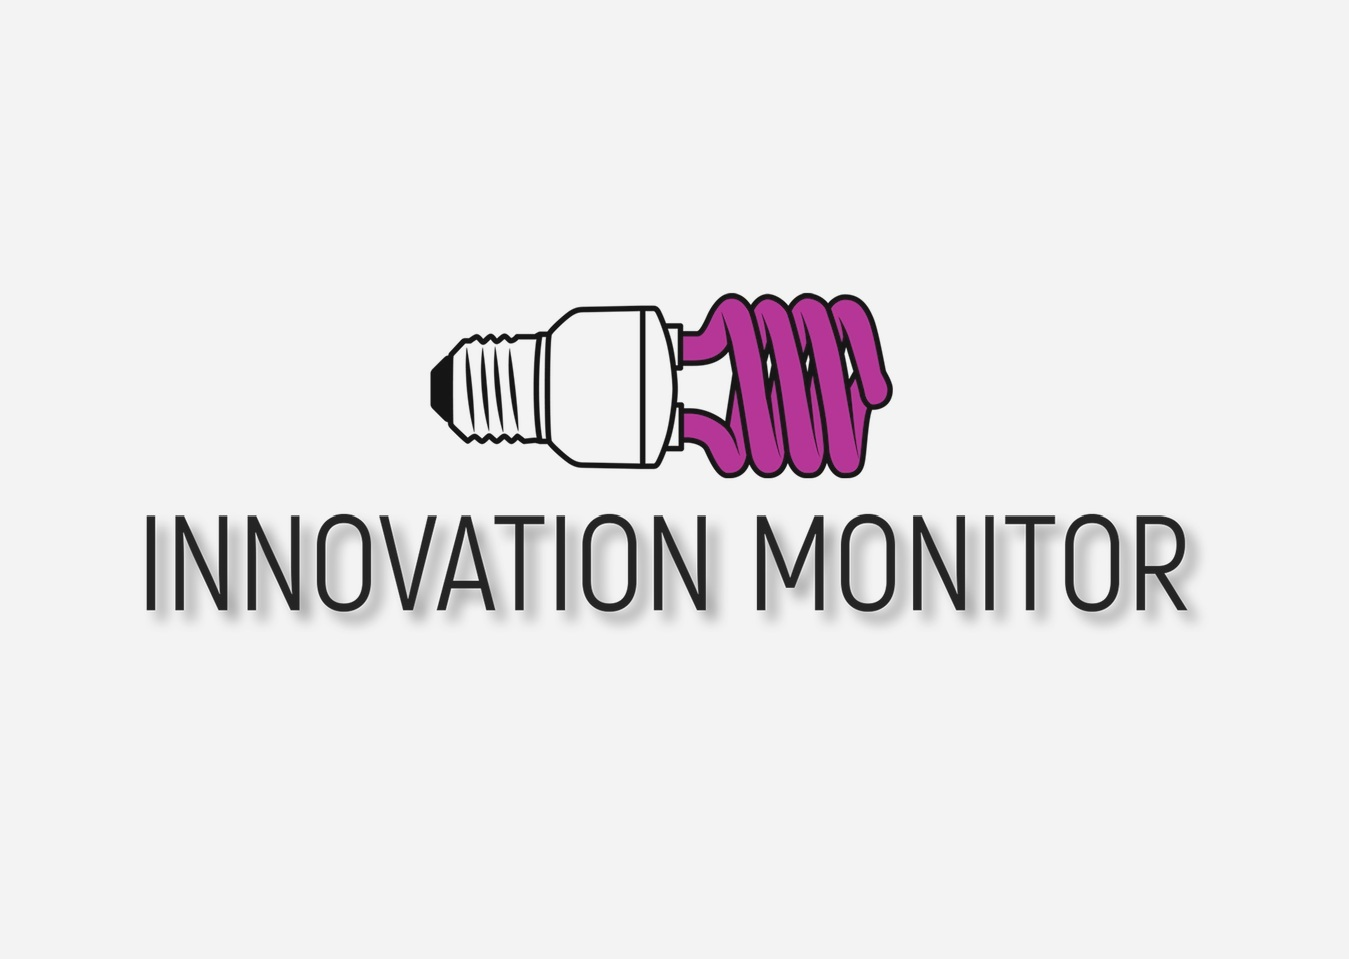 Innovation Monitor - Innovation Monitor is a weekly report that details how companies are adopting emerging technology into their core business strategies. Delivered on Friday's via our mailing list, each issue includes a deep-dive into a technology area across varying verticals; updates on innovation practices; and links to helpful tips and resources.